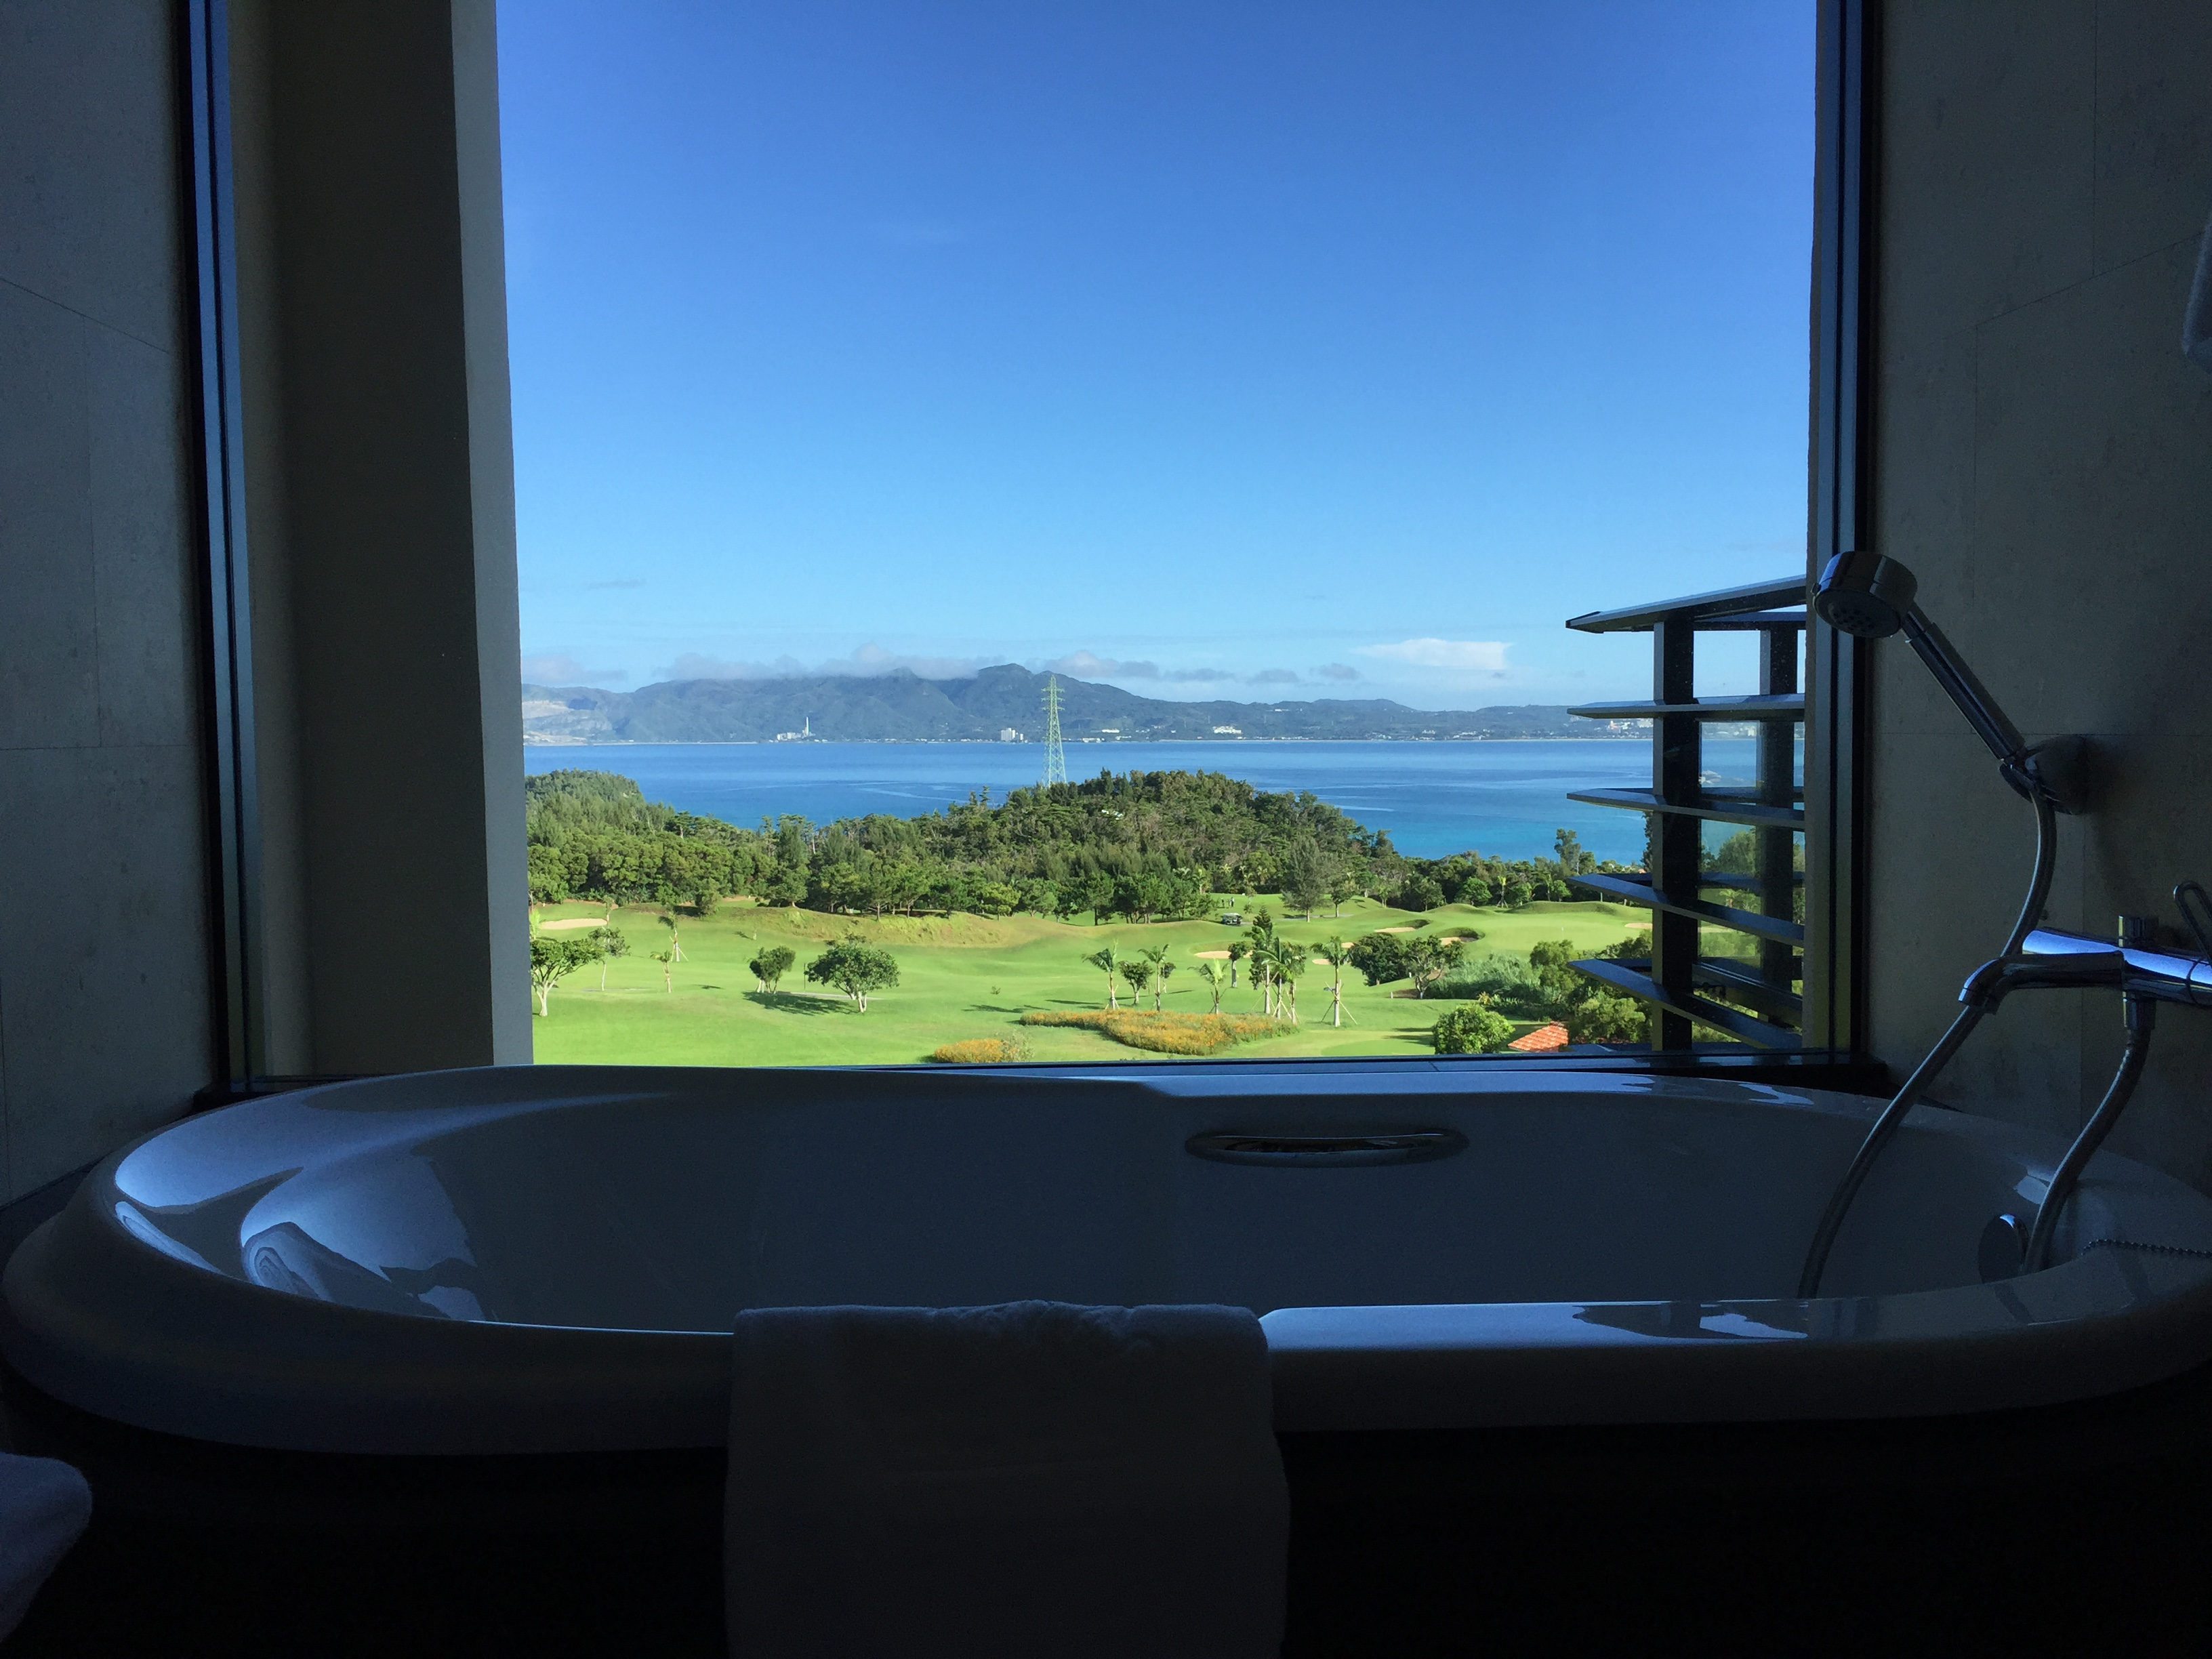 Ritz-Carlton Okinawa bathtub view